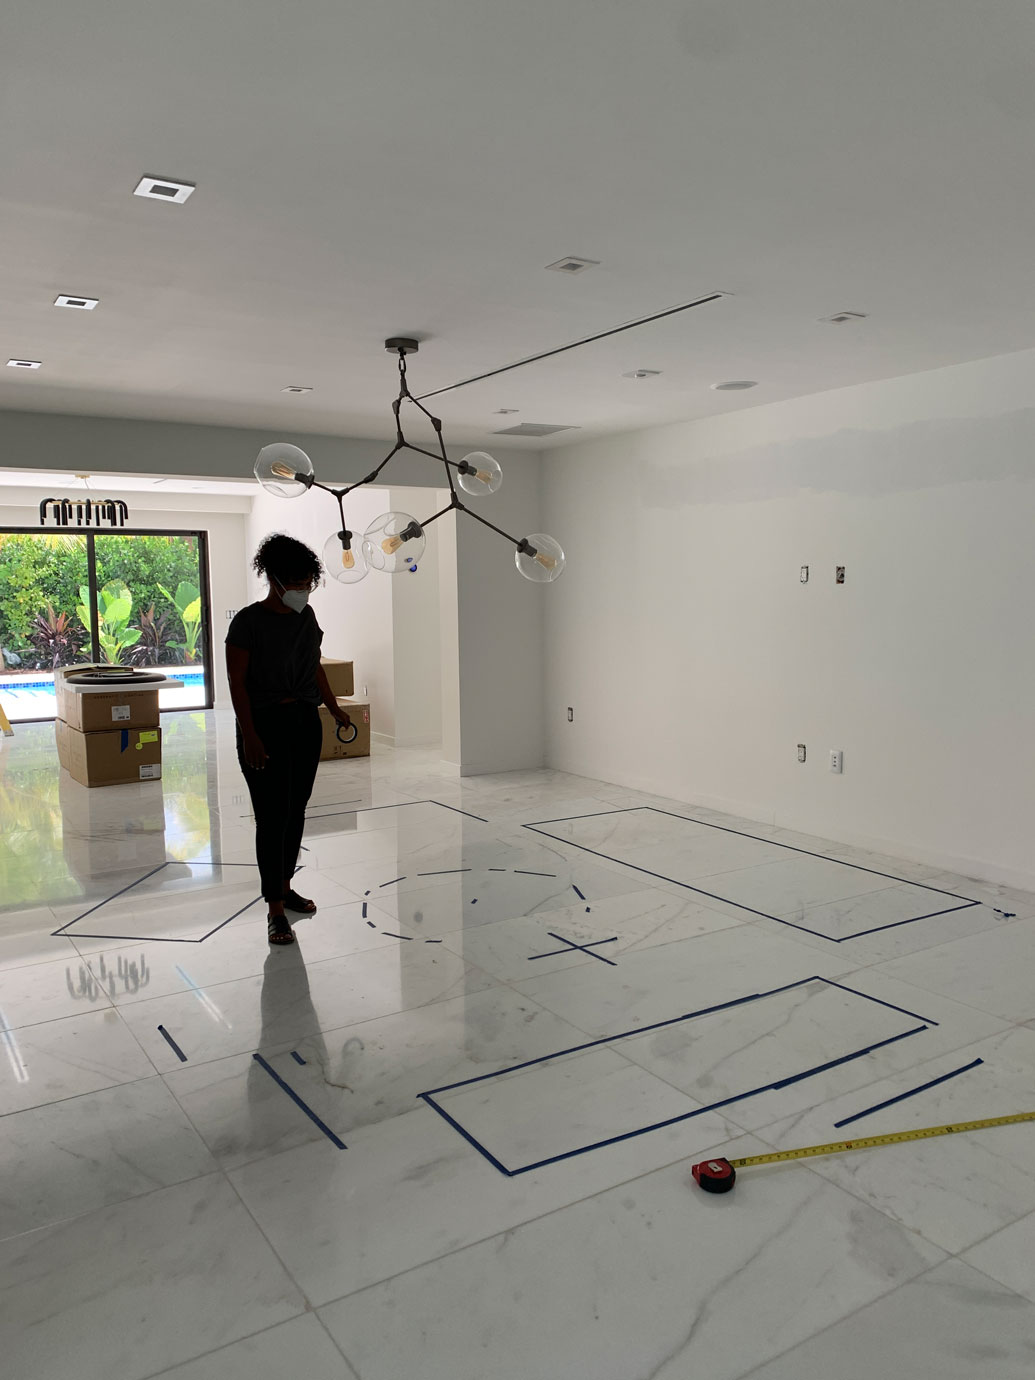 Miami Home Design: Relocating During the Coronavirus Pandemic